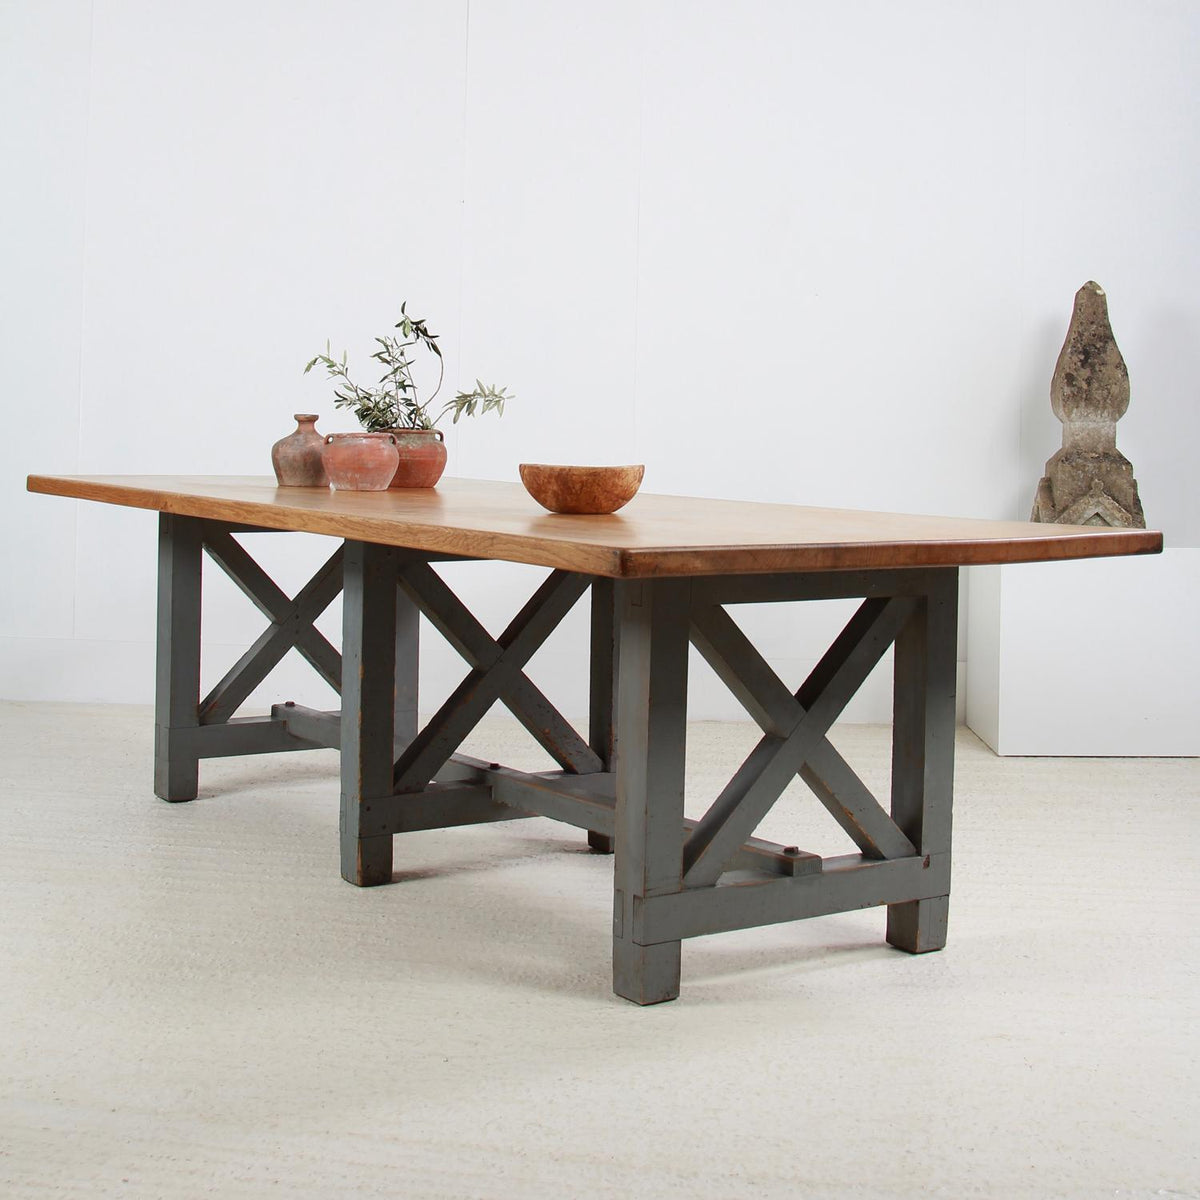 Massive Oak 20thC X- Frame Refectory Dining Table with Painted Base